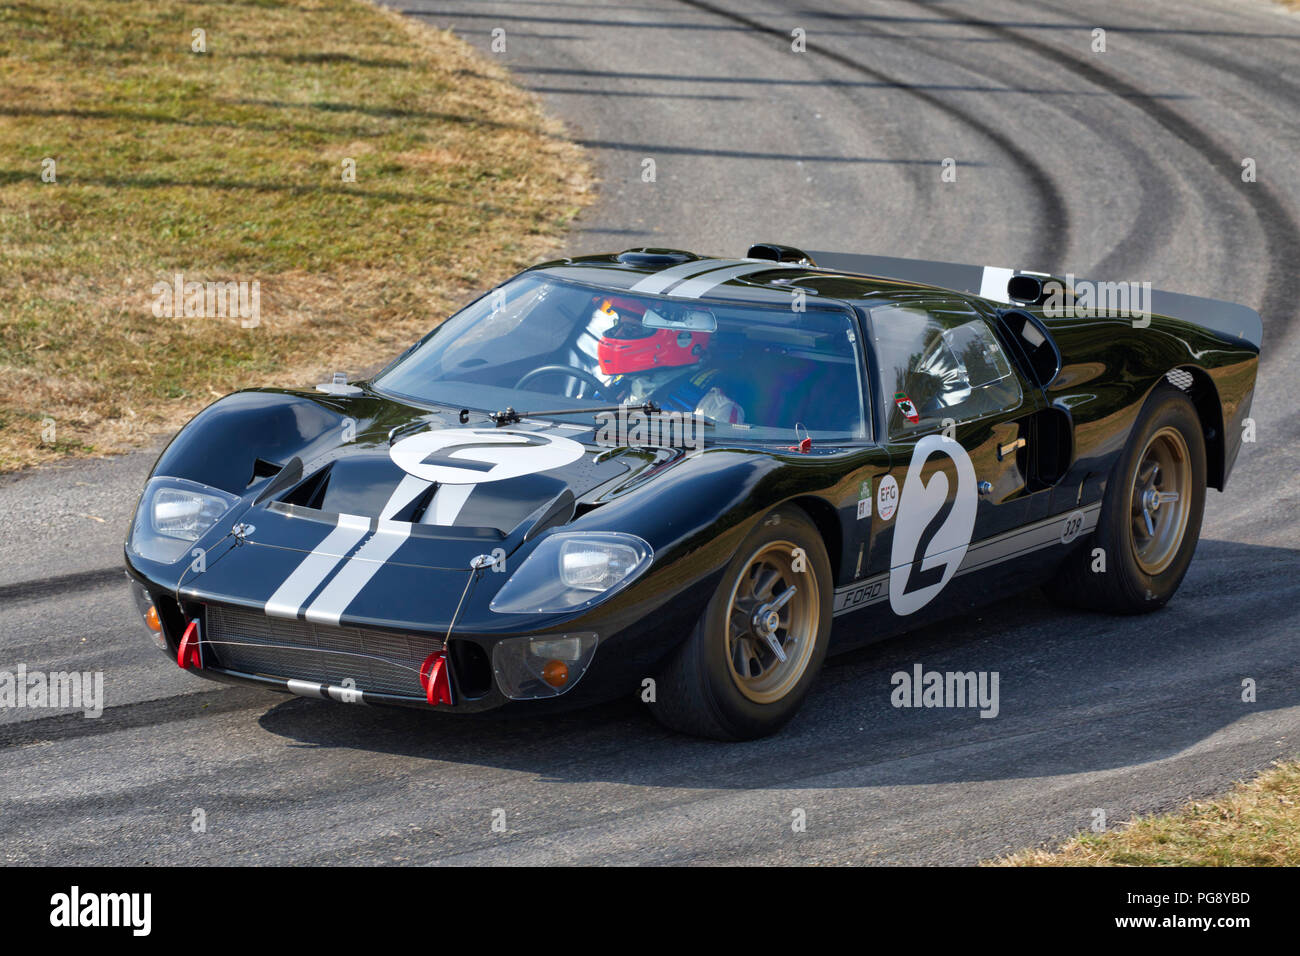 Ford Gt Mkii Le Mans Racer With Driver Robert Kauffman At The  Goodwood Festival